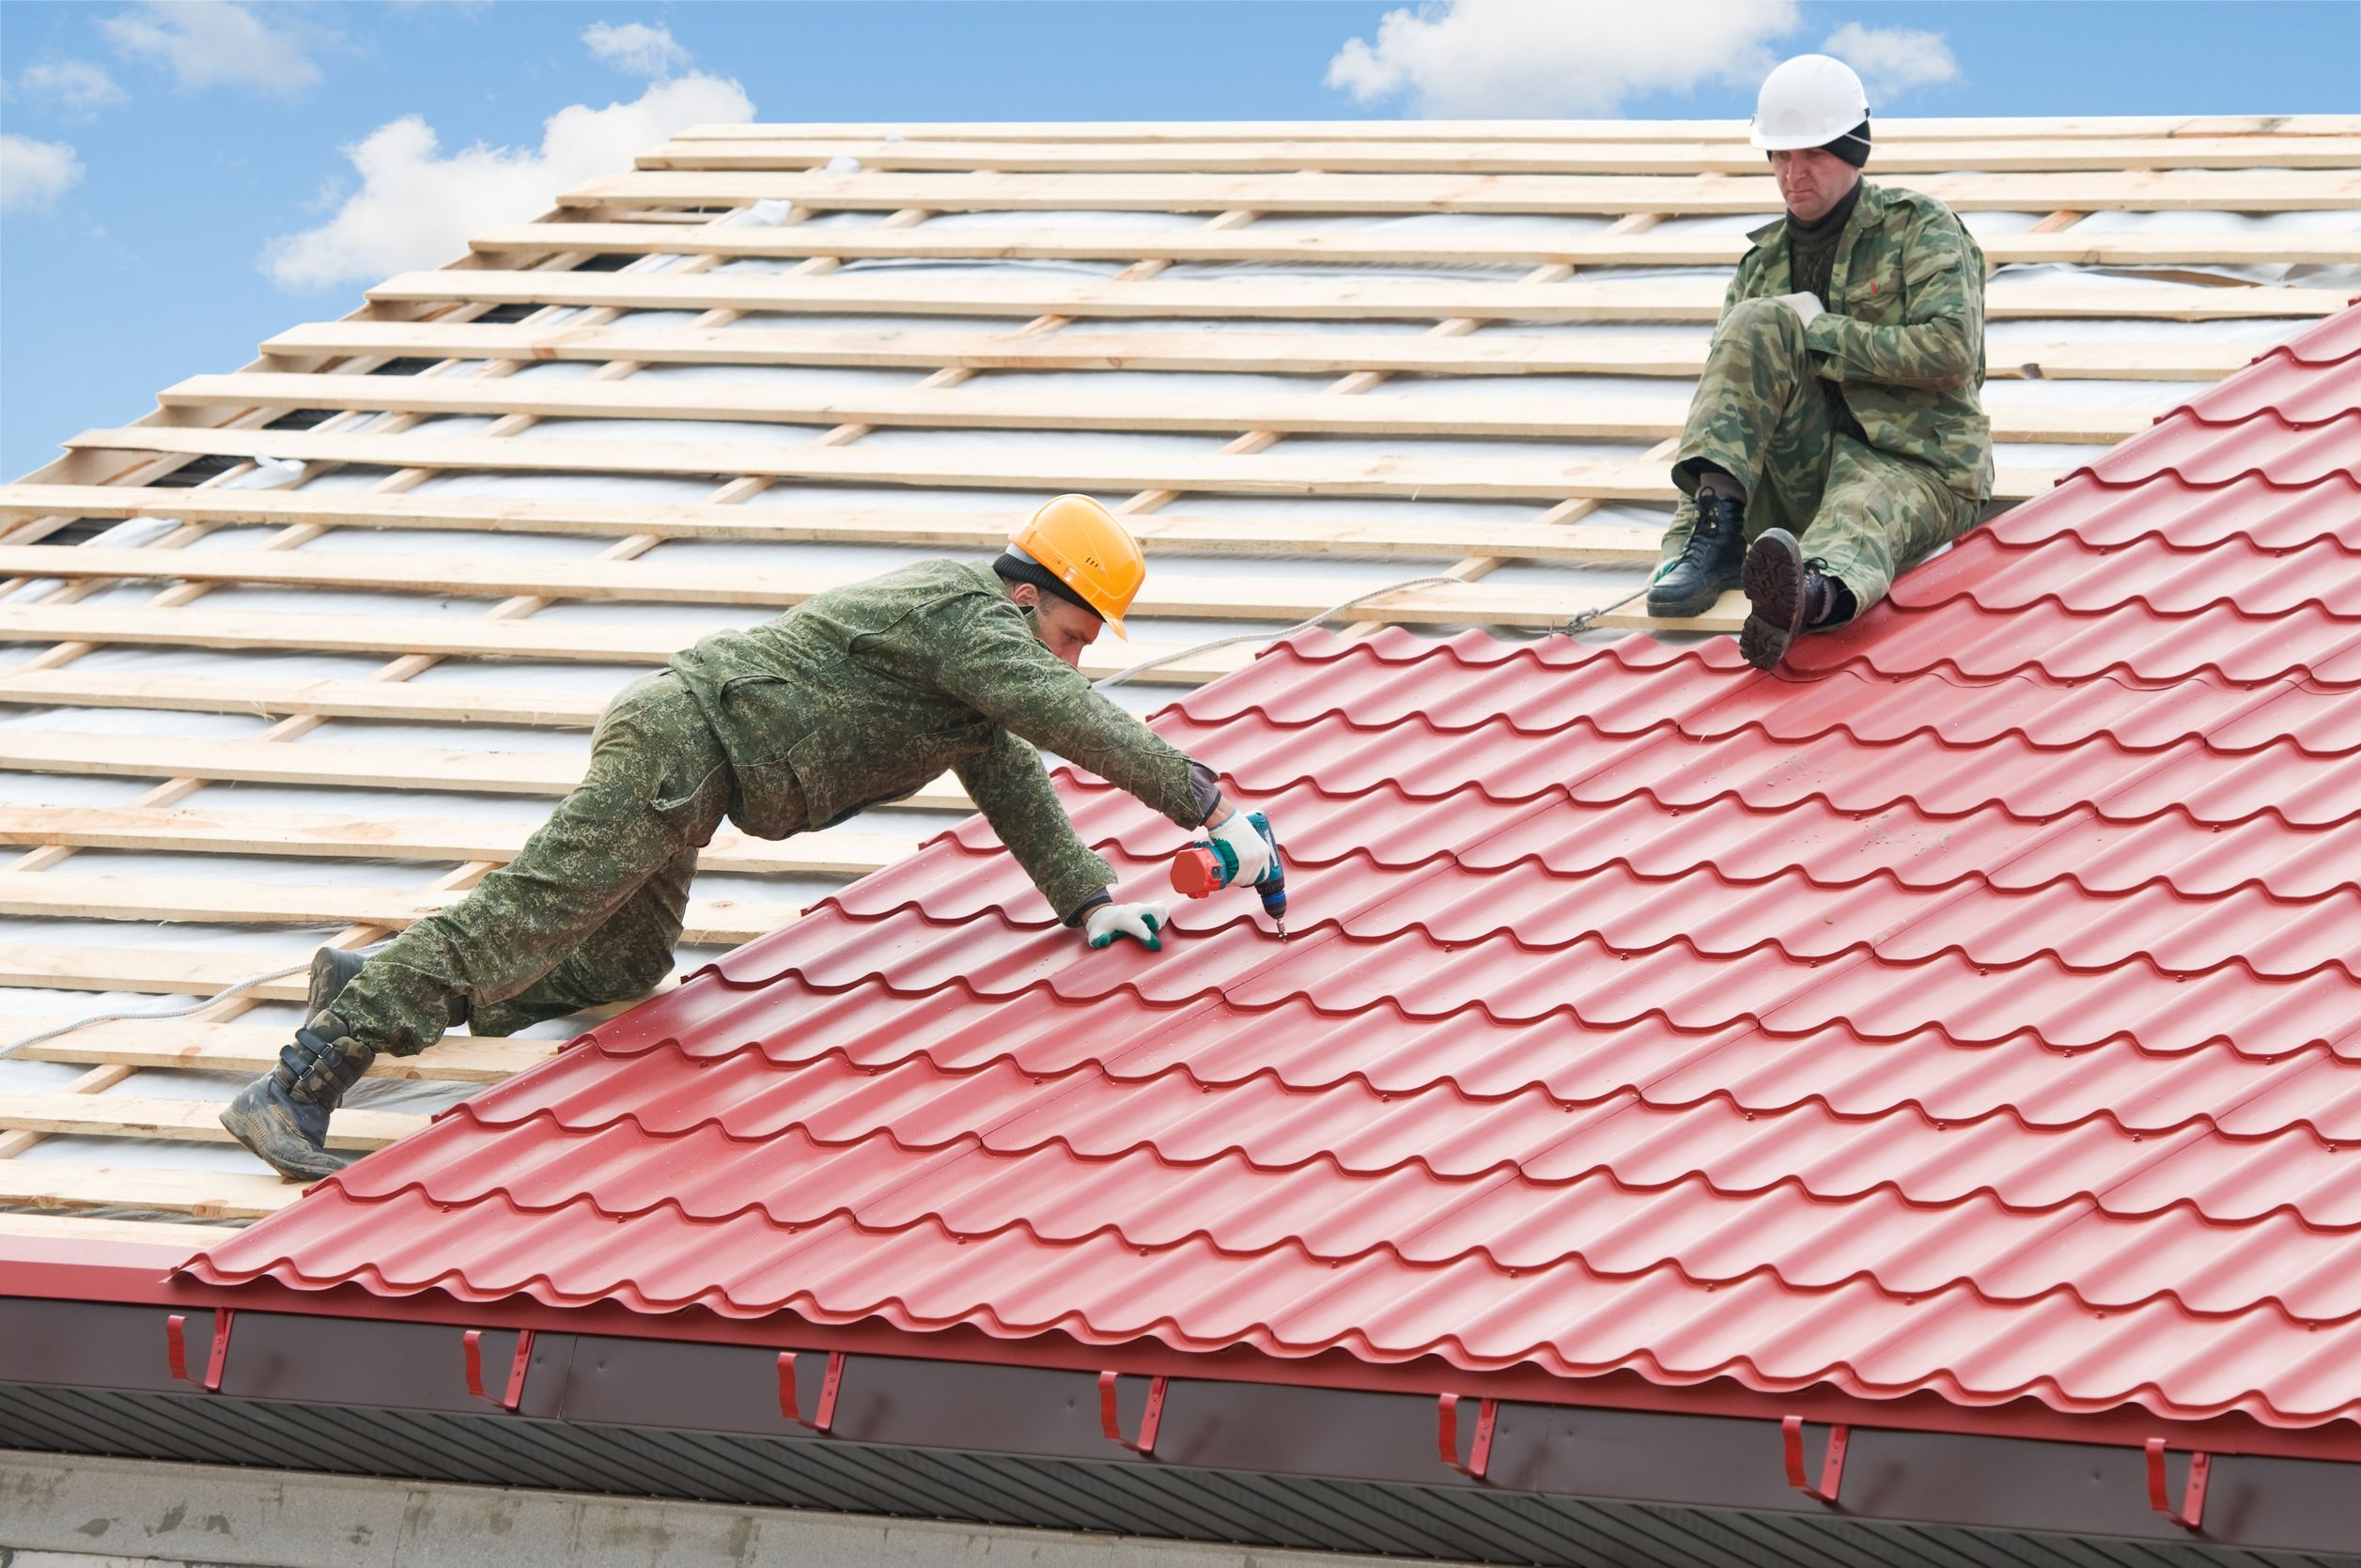 Increasing Durability of Roof With Proper Cleaning Techniques